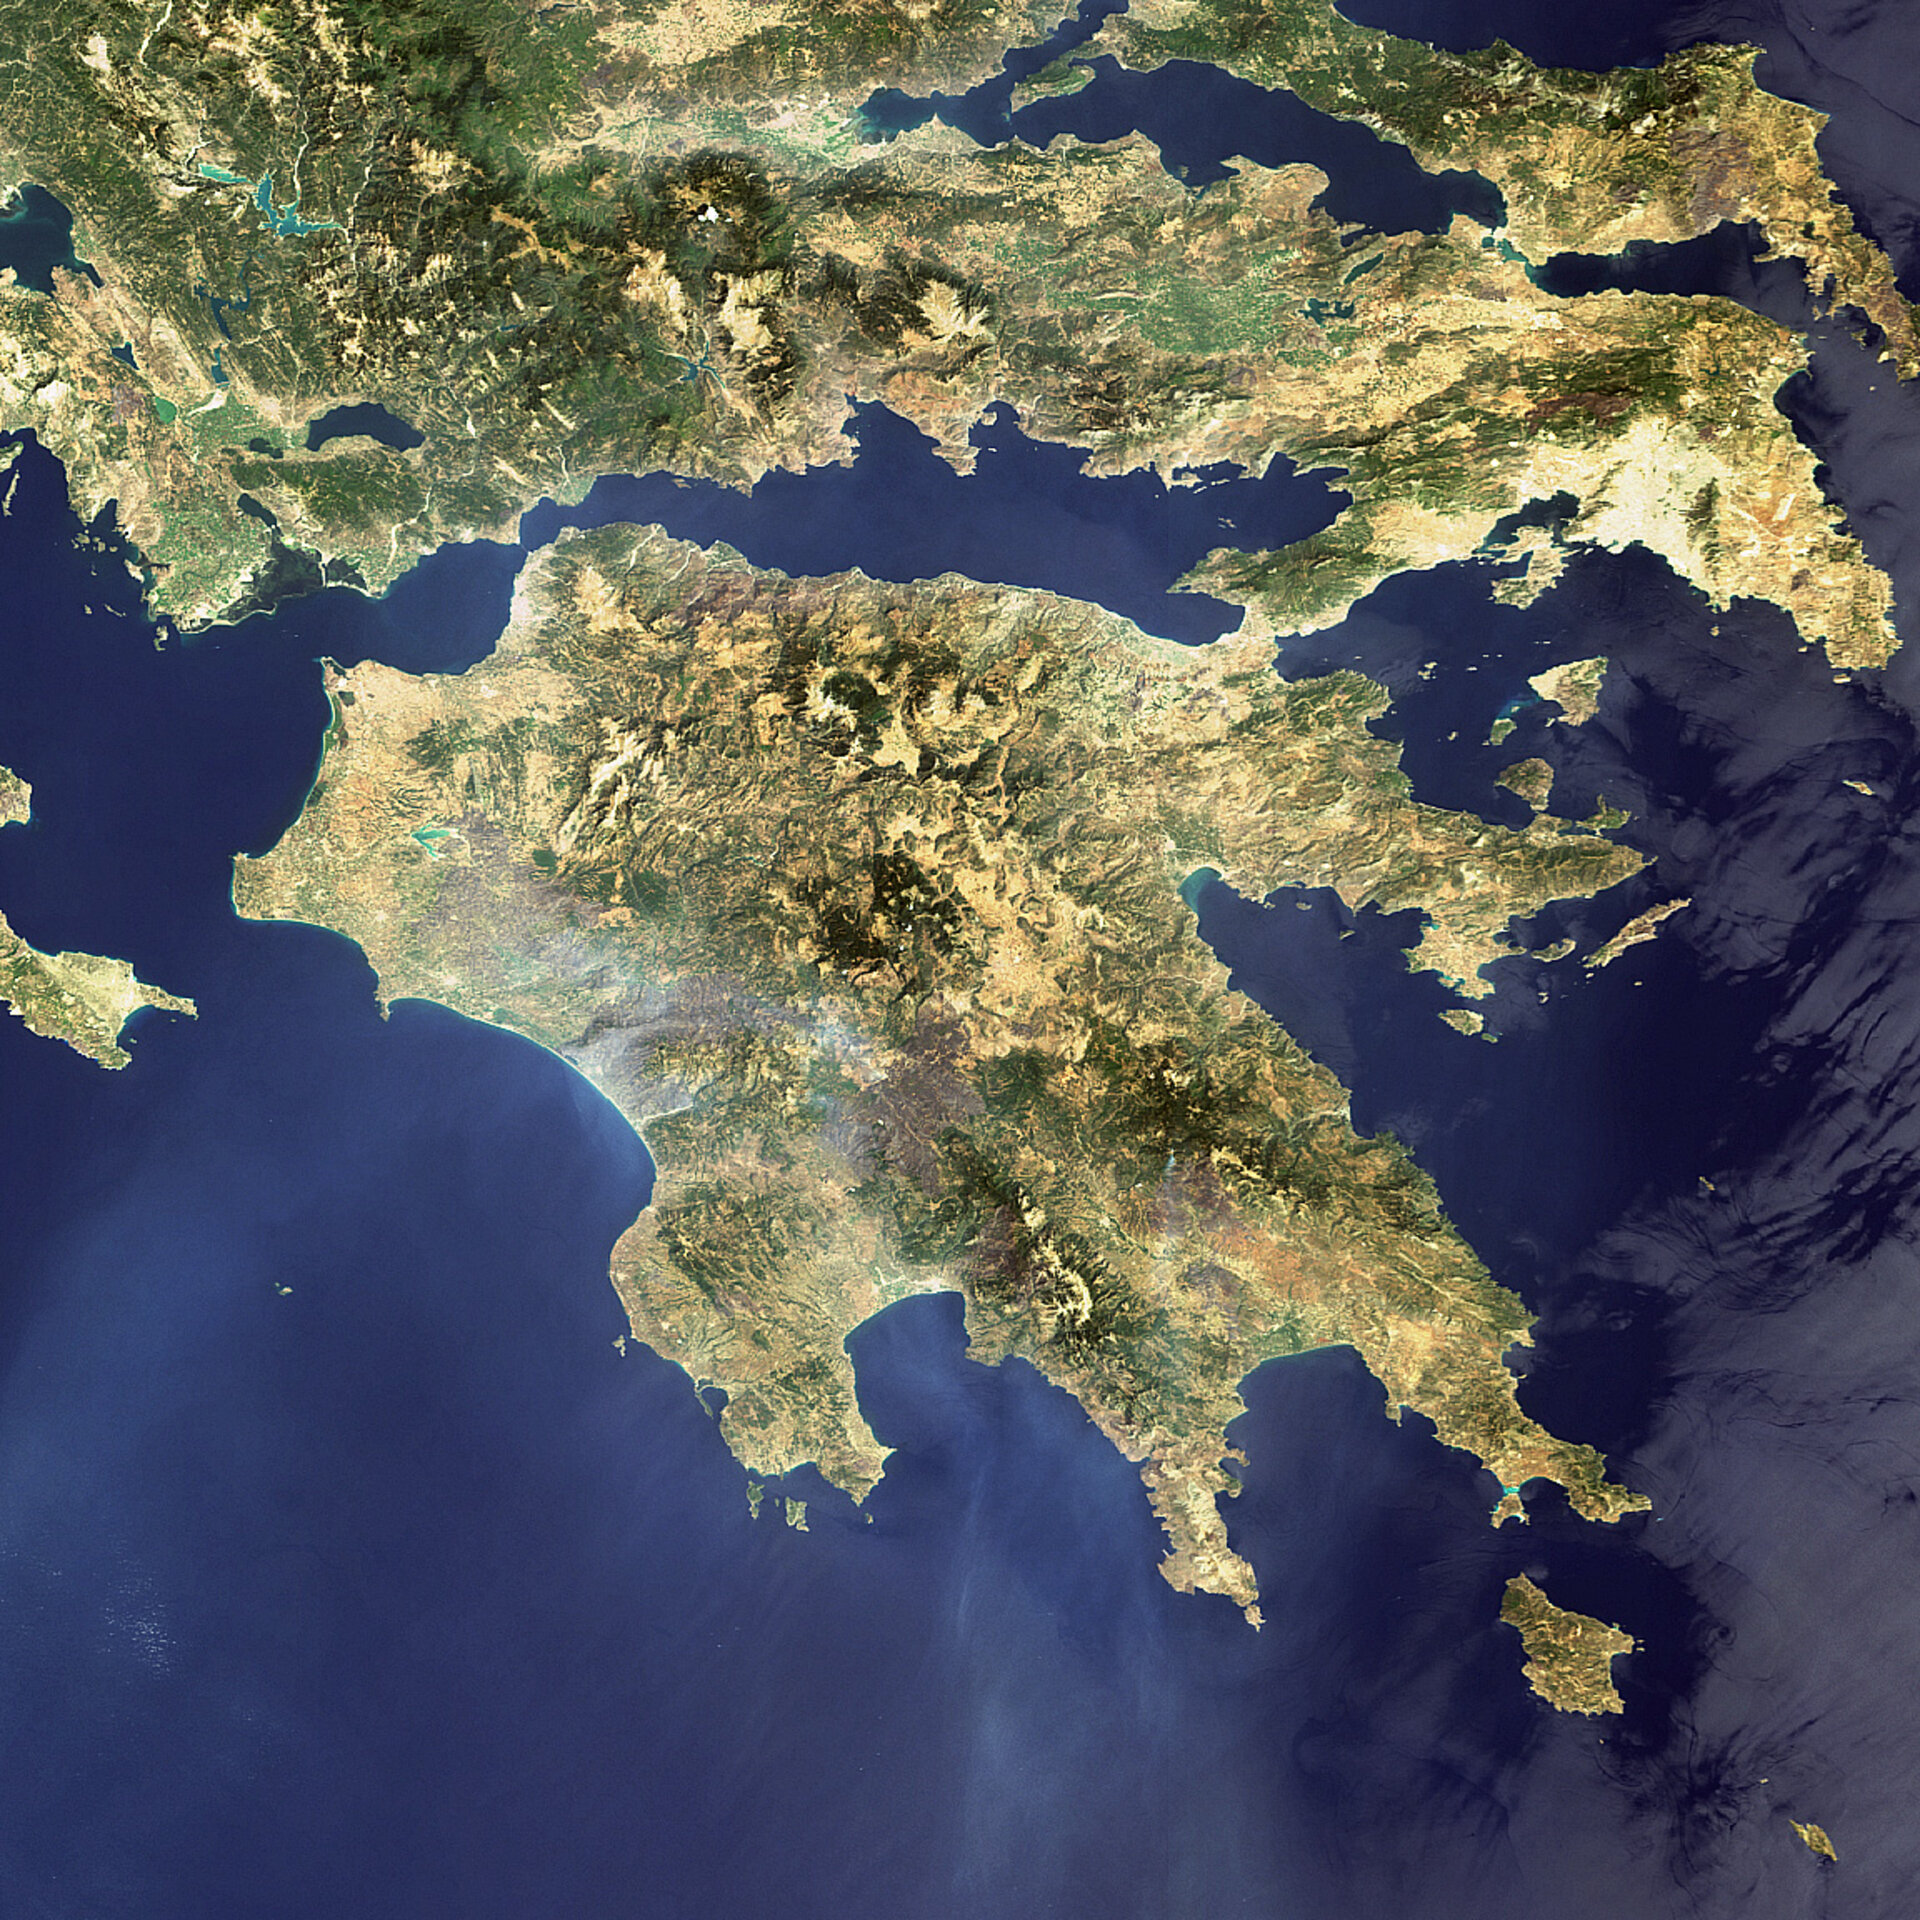 Aftermath of Greek fires